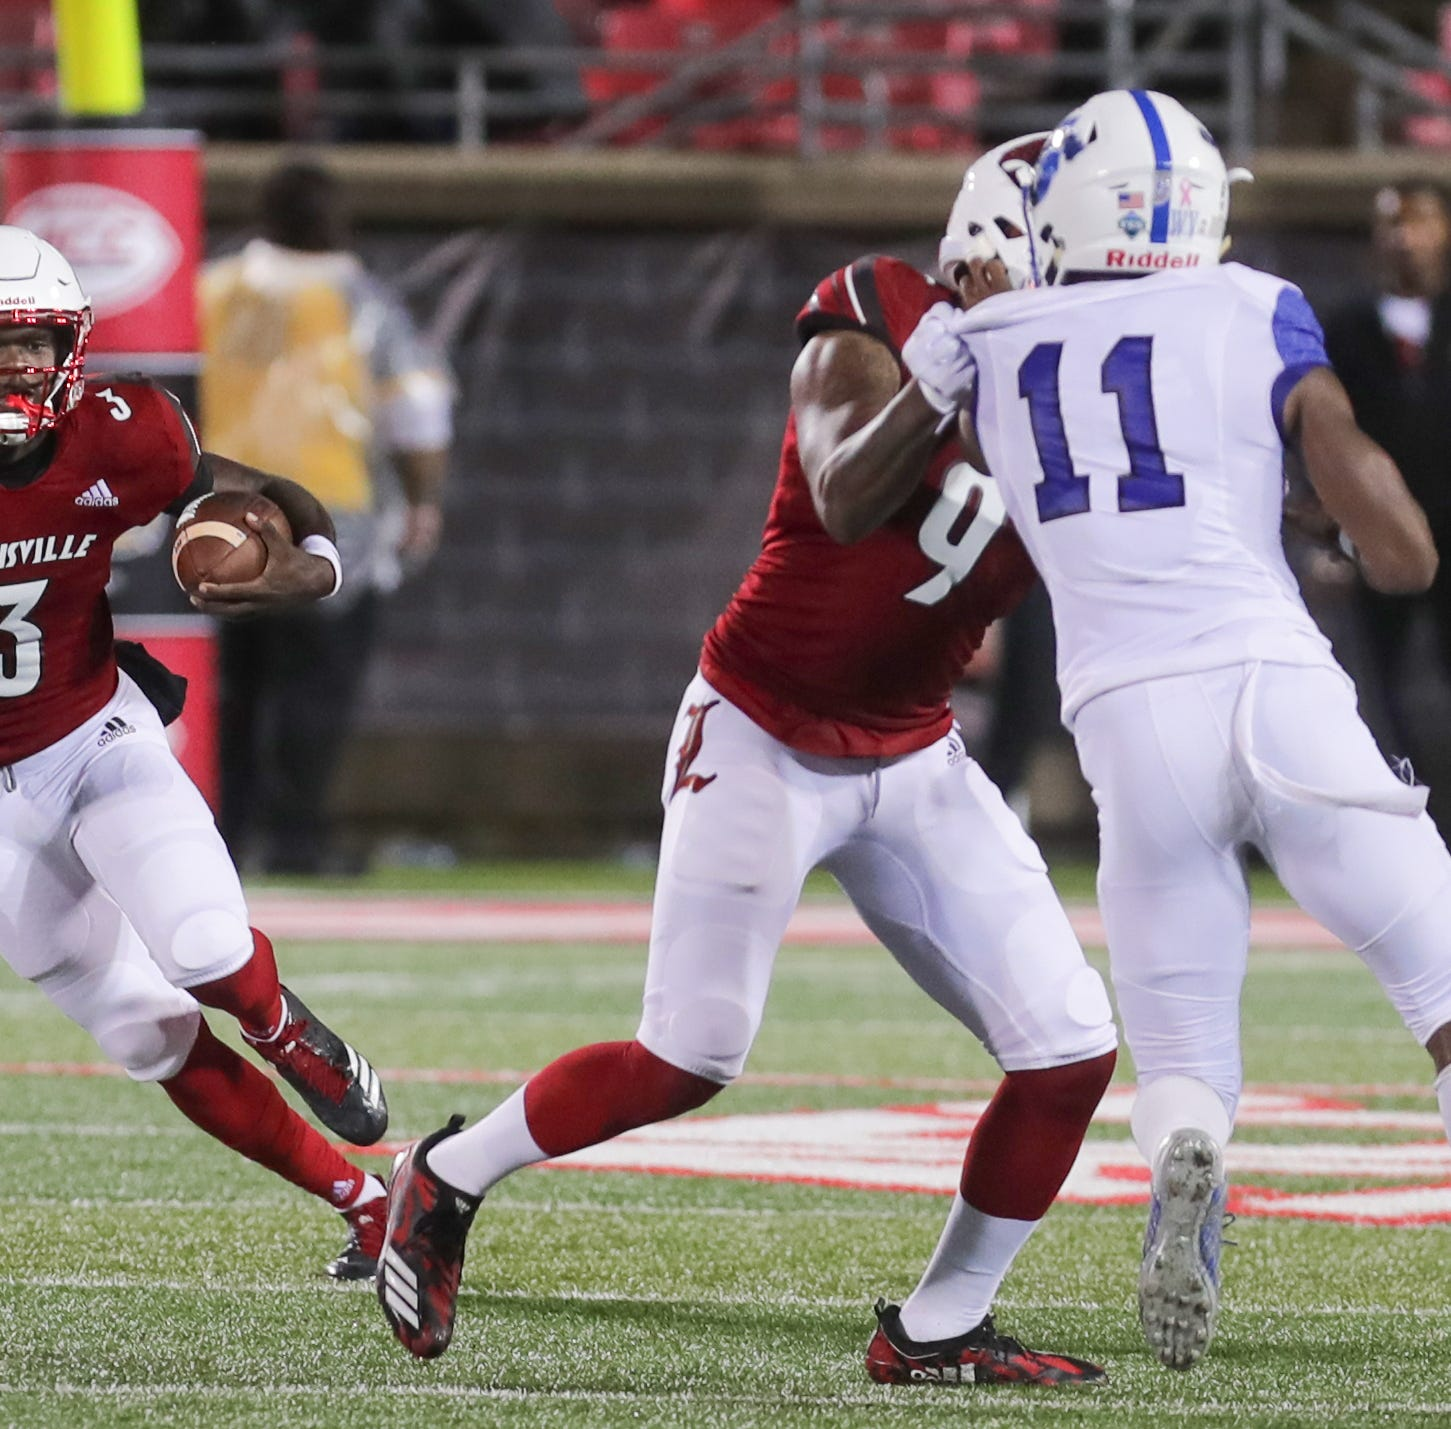 Louisville's Malik Cunningham on starting at QB: 'I've been waiting'